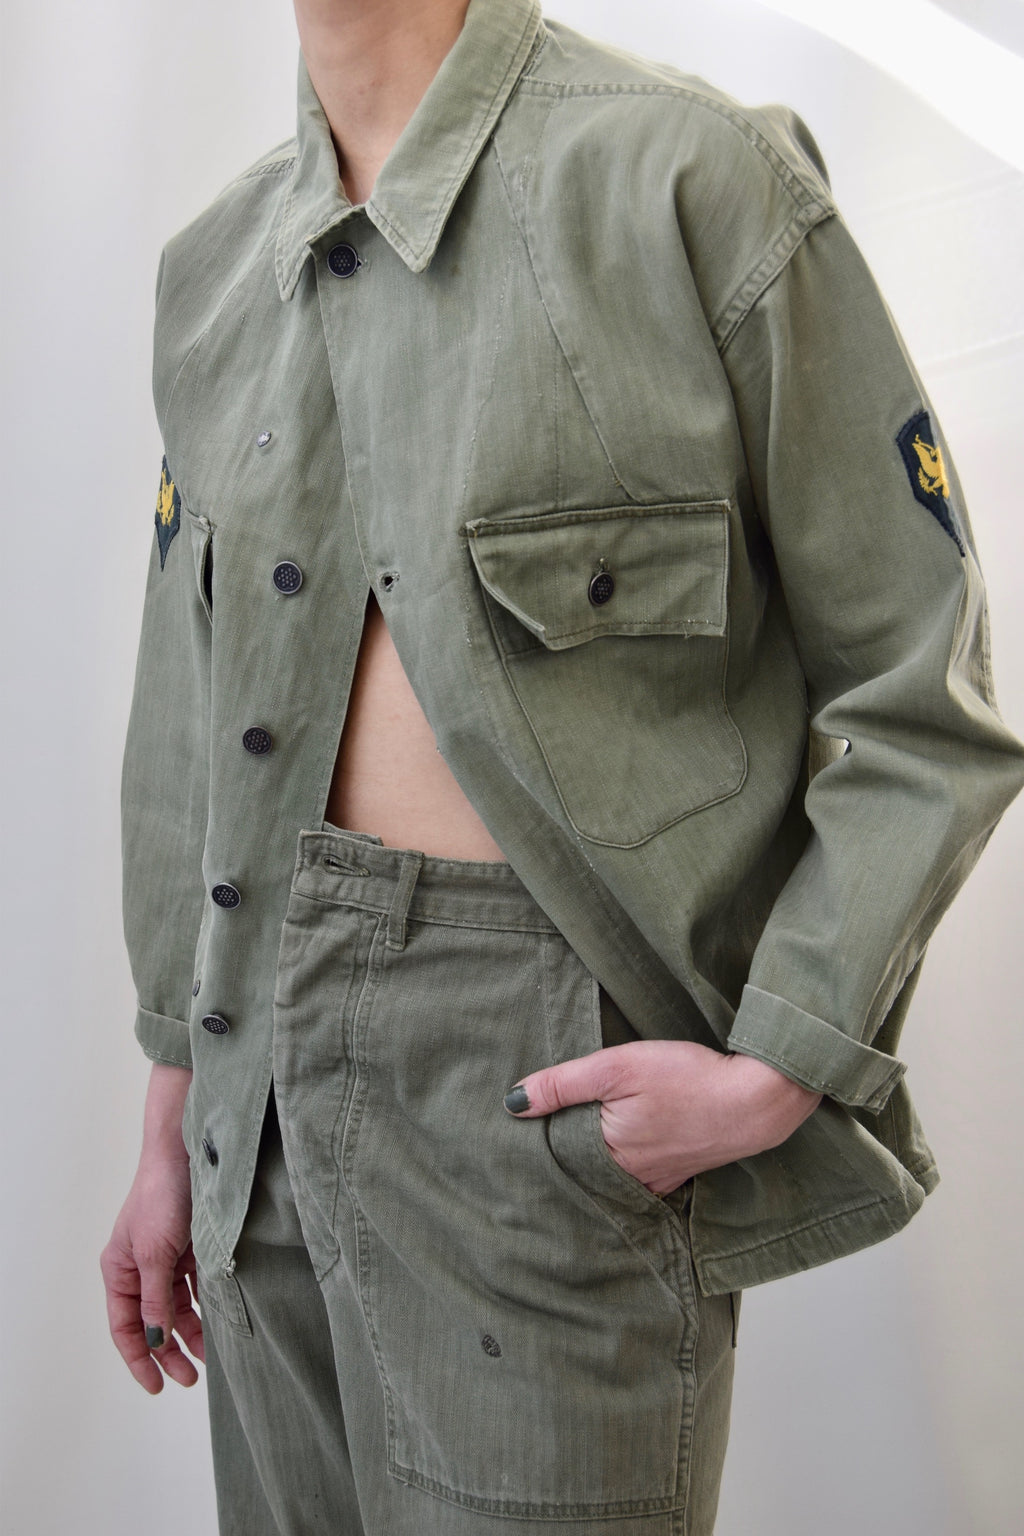 WWII HBT 13 Star Shirt and Trouser Set